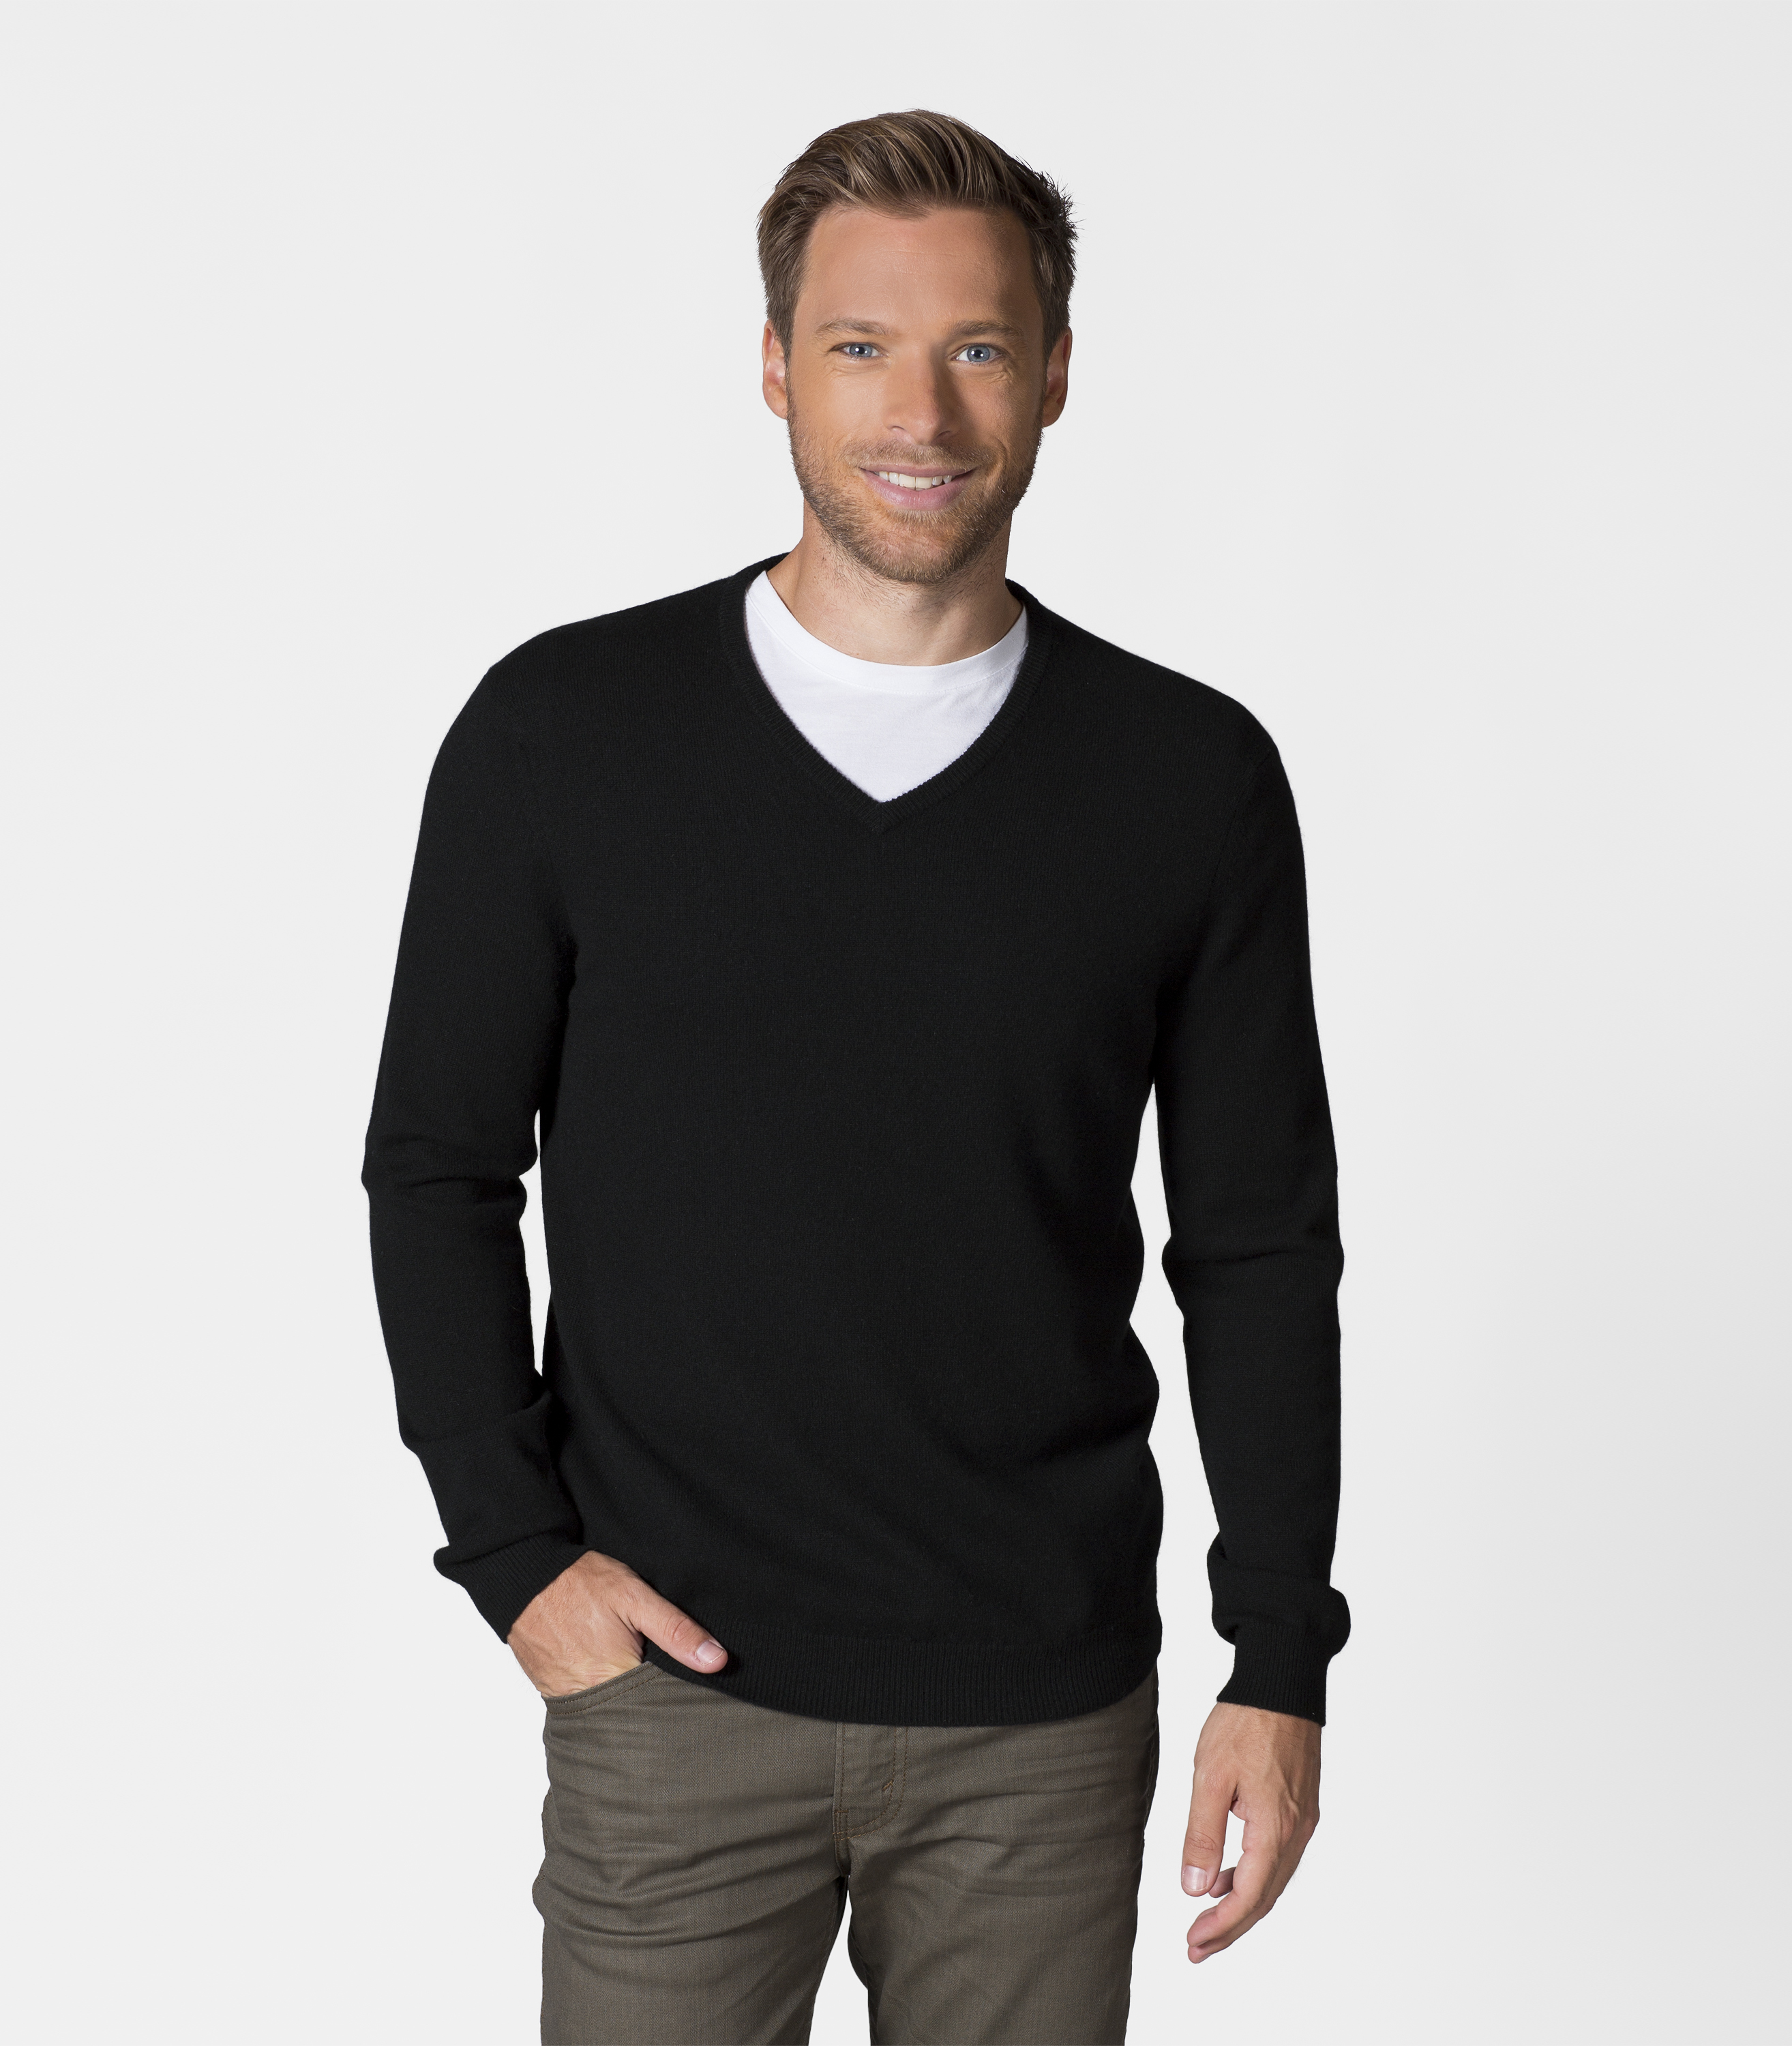 woolovers mens pure cashmere v neck casual jumper sweater pullover knitwear. Black Bedroom Furniture Sets. Home Design Ideas